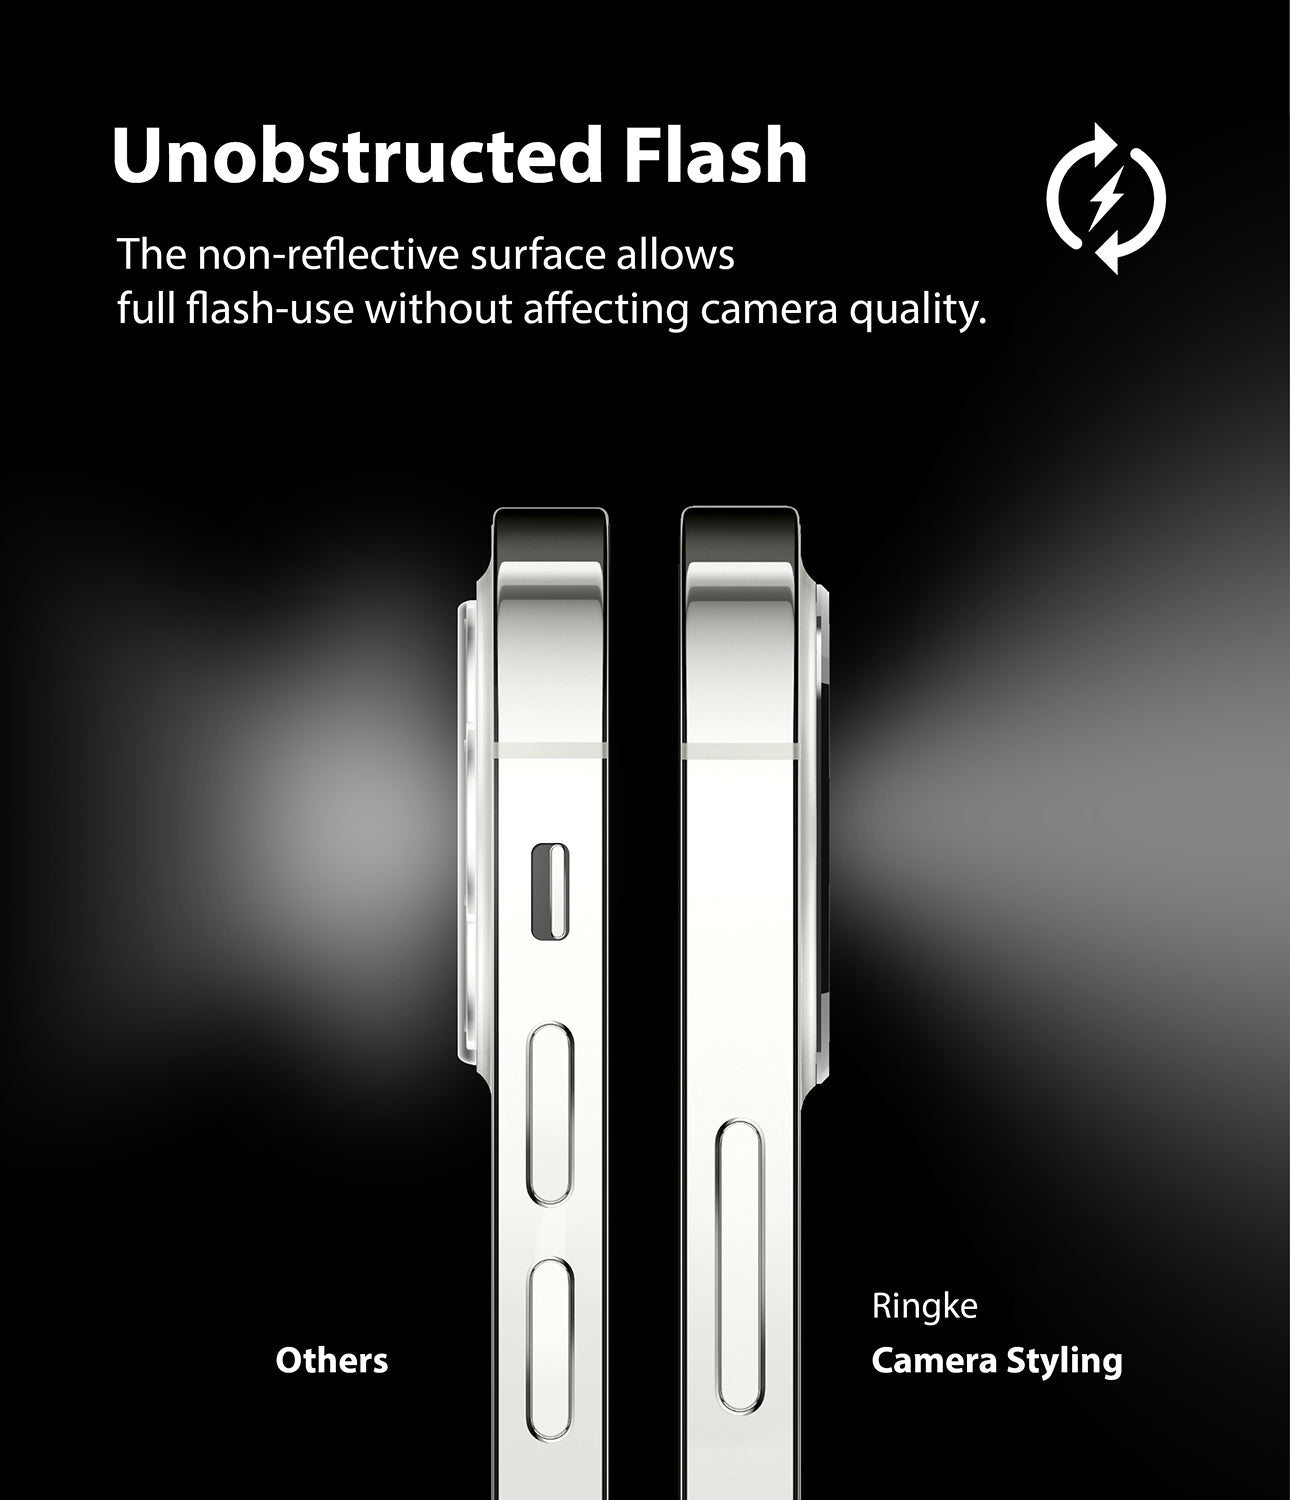 unobstructed flash - the non-reflective surface allows full flash-use without affecting camera quality